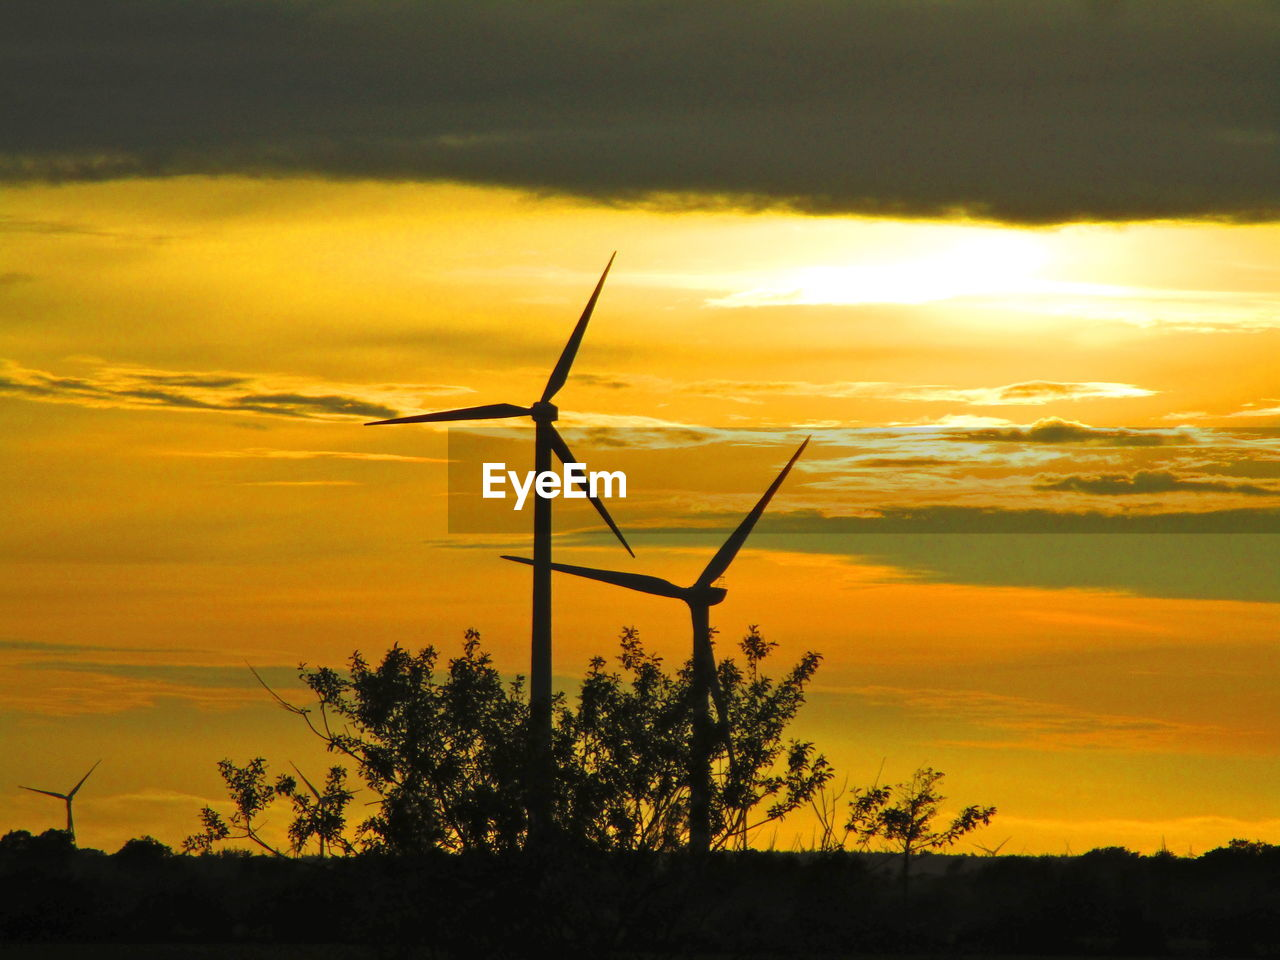 sunset, sky, cloud - sky, renewable energy, silhouette, alternative energy, fuel and power generation, orange color, turbine, environment, beauty in nature, environmental conservation, wind turbine, wind power, scenics - nature, nature, plant, tree, no people, technology, outdoors, sustainable resources, power supply